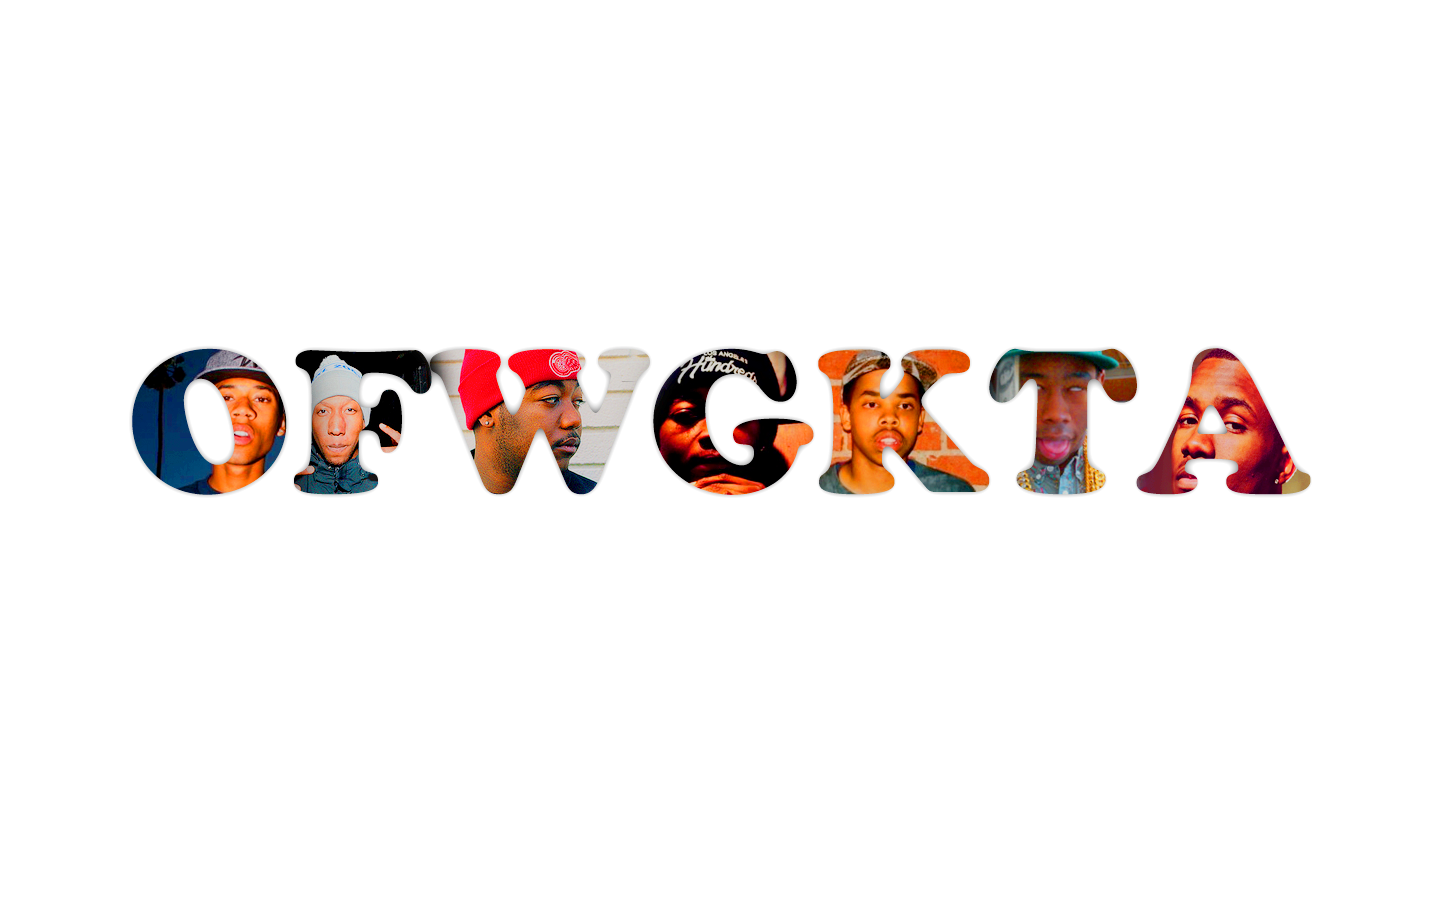 Ofwgkta Cross Wallpaper Hd | www.imgkid.com - The Image ...